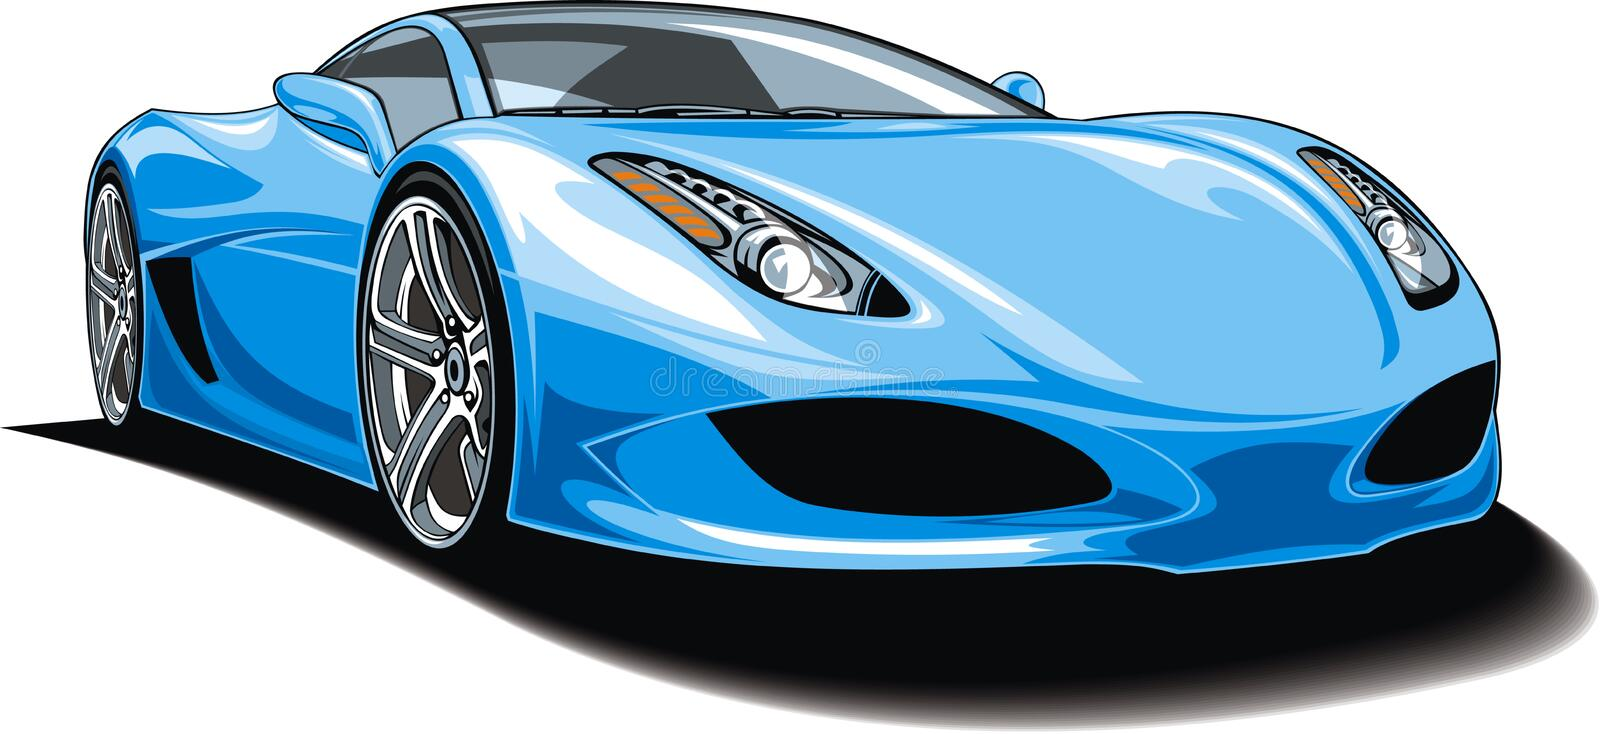 My original sport car design. Isolated on the white background stock illustration